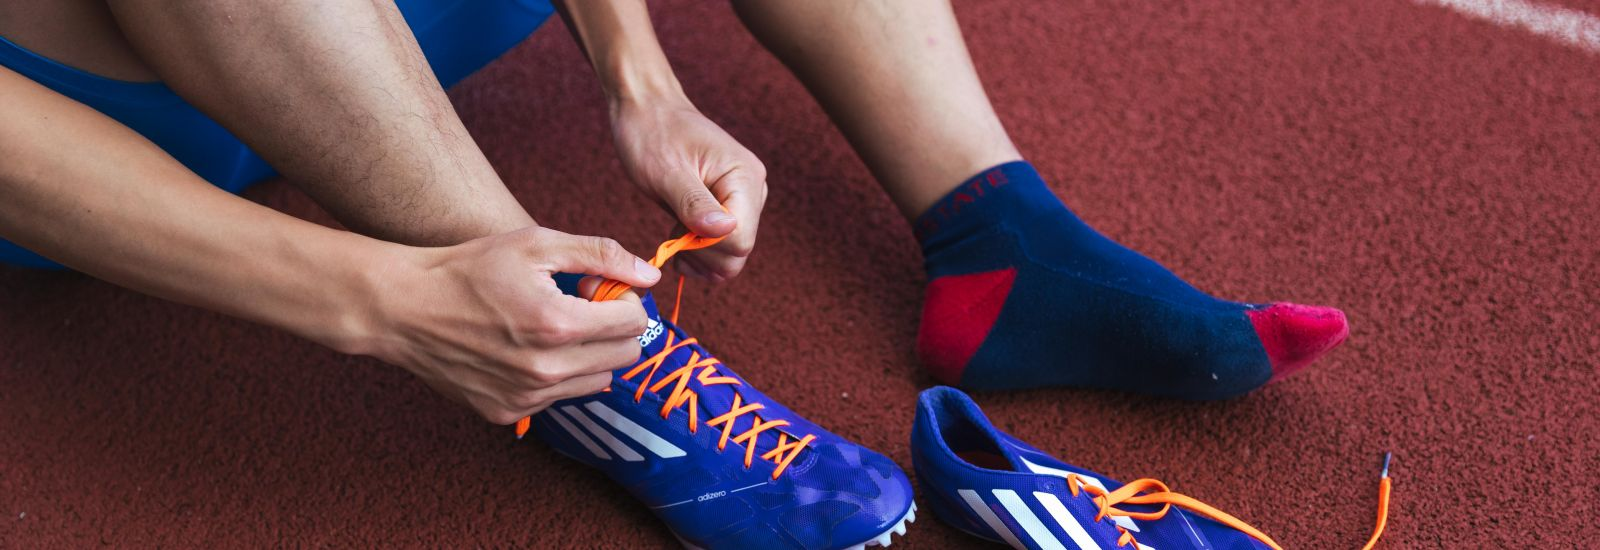 Student tying laces of running spiked on running track